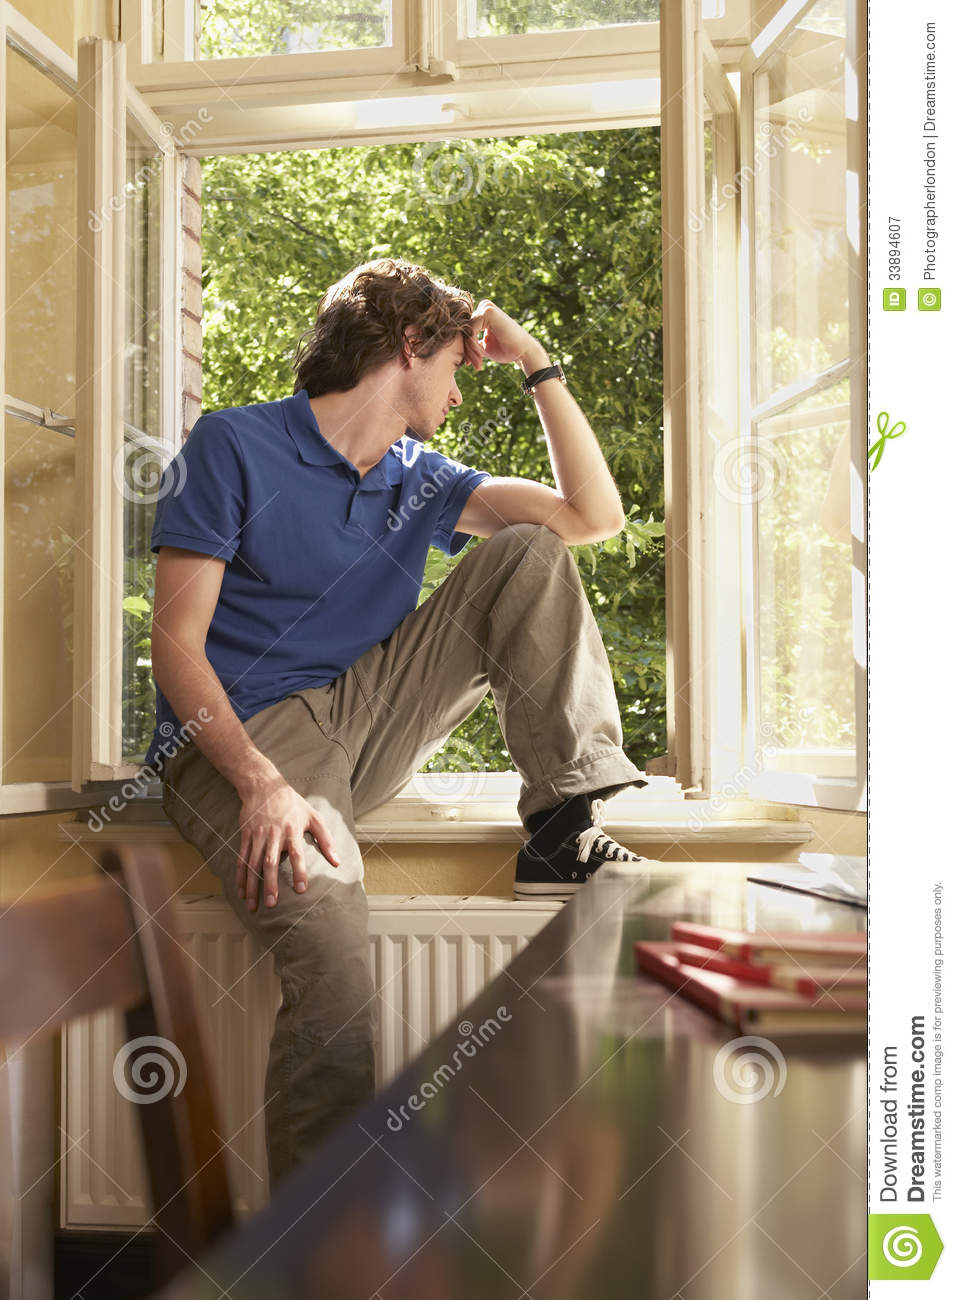 Man Looking Out Of Window Sill In Study Room Stock Image